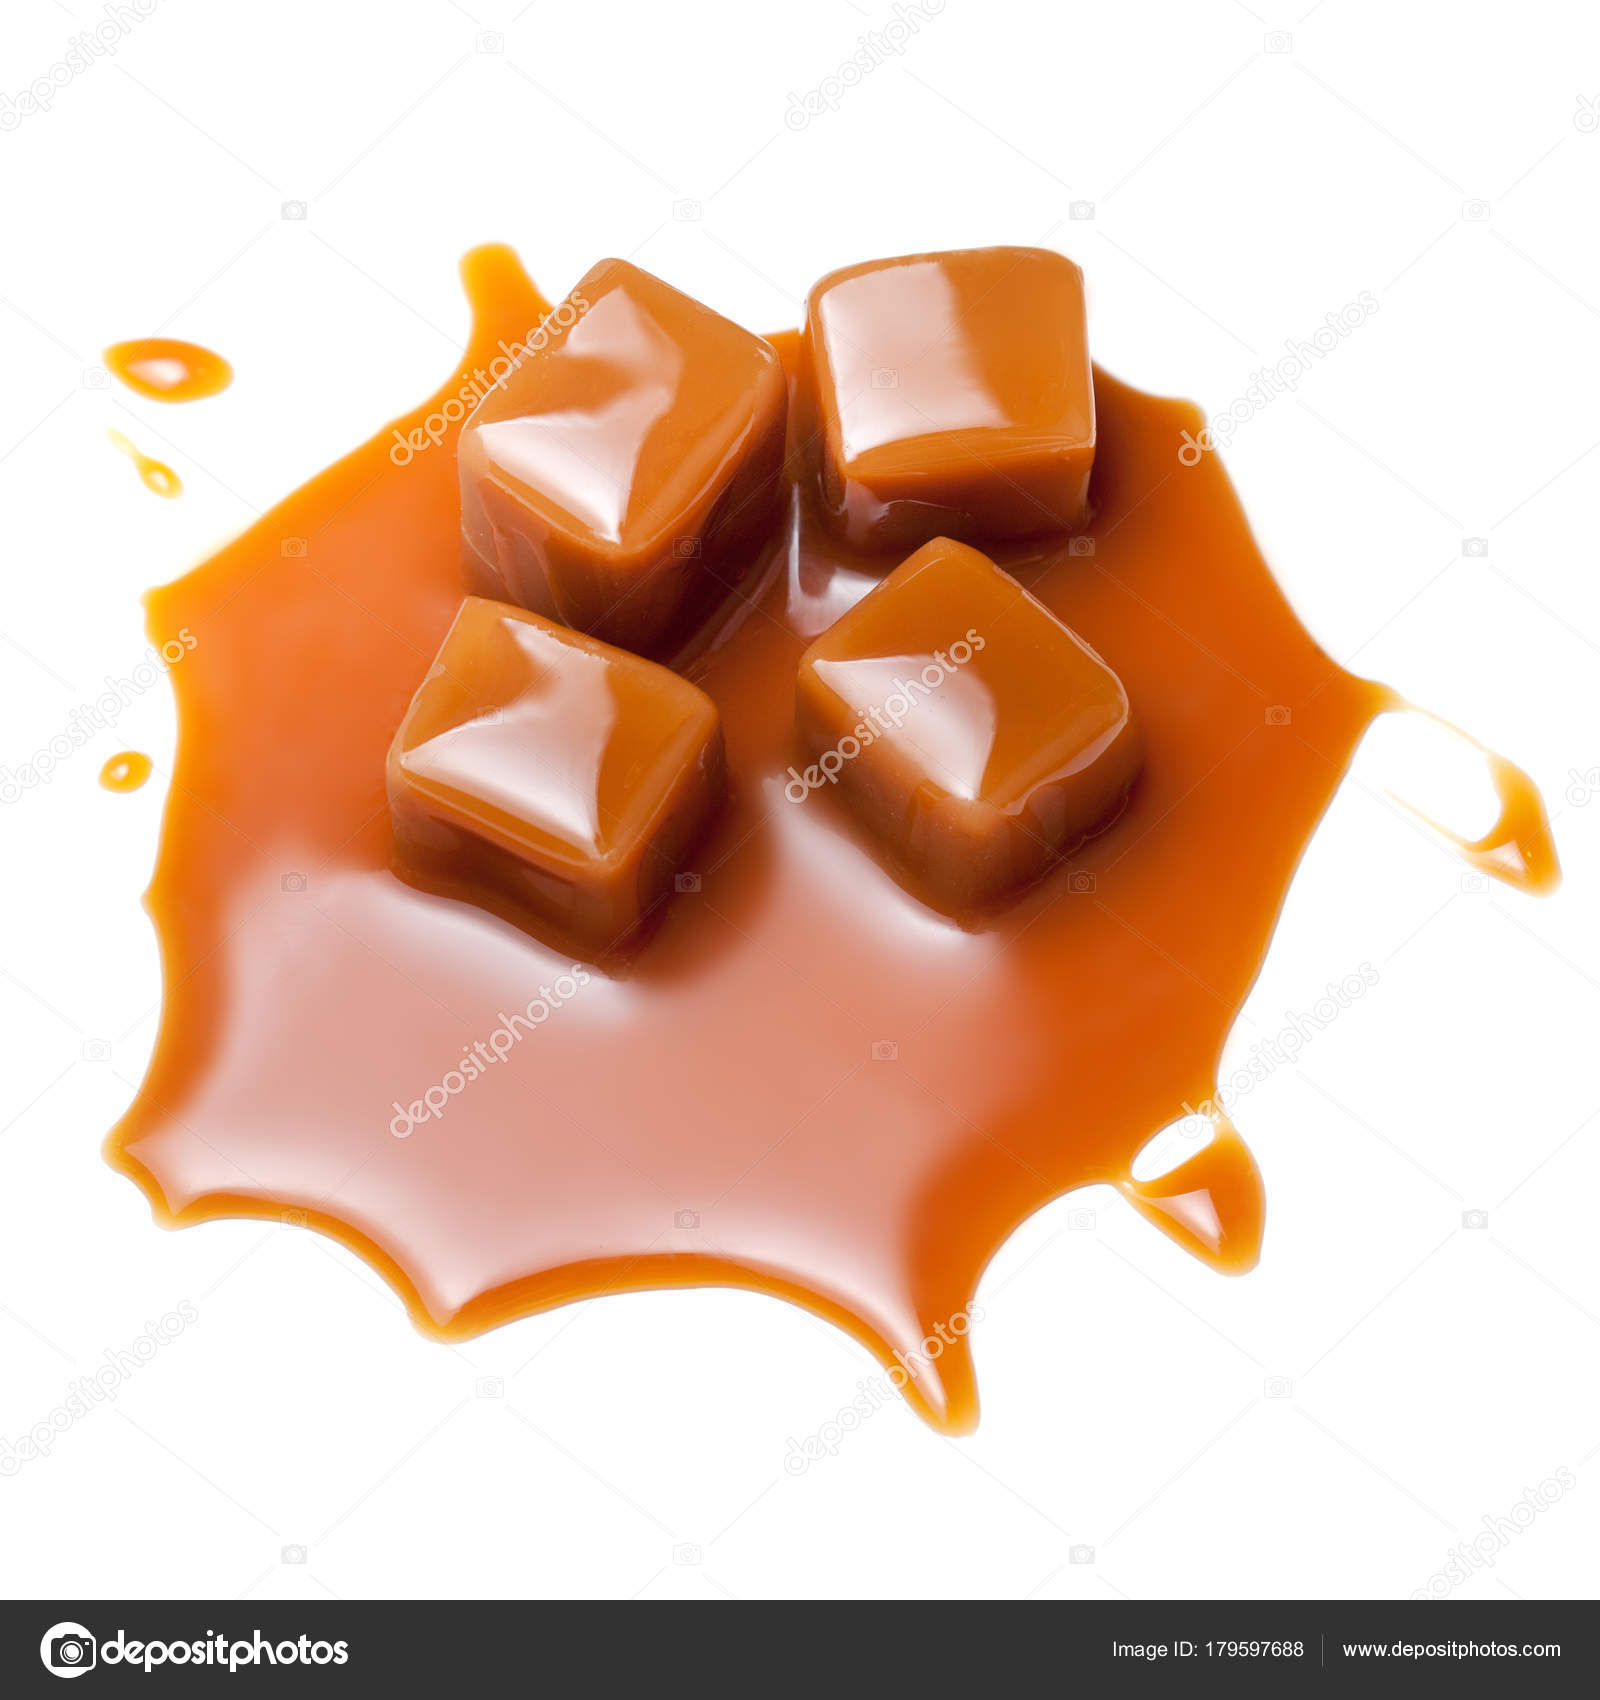 https://st3.depositphotos.com/2370557/17959/i/1600/depositphotos_179597688-stock-photo-caramel-sauce-golden-butterscotch-toffee.jpg